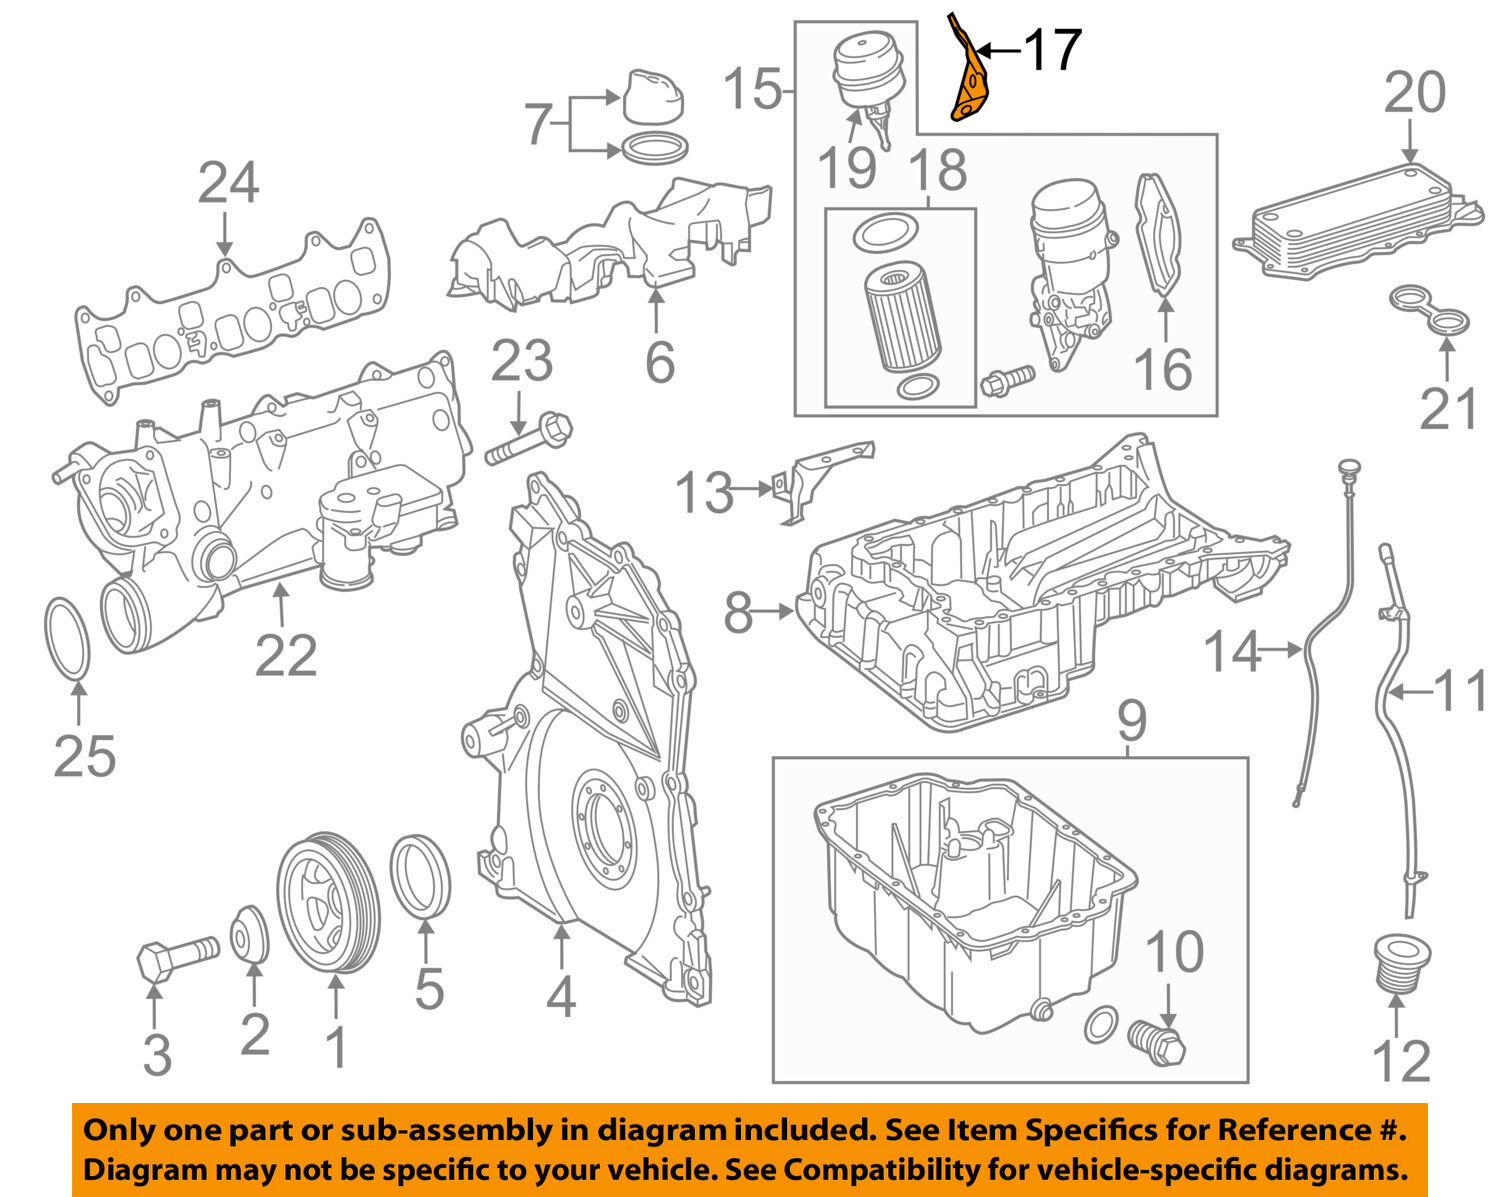 Genuine Oem Mercedes Benz Engine Oil Filter O Ring Seals 642 180 Diagrams 1 Of 2free Shipping